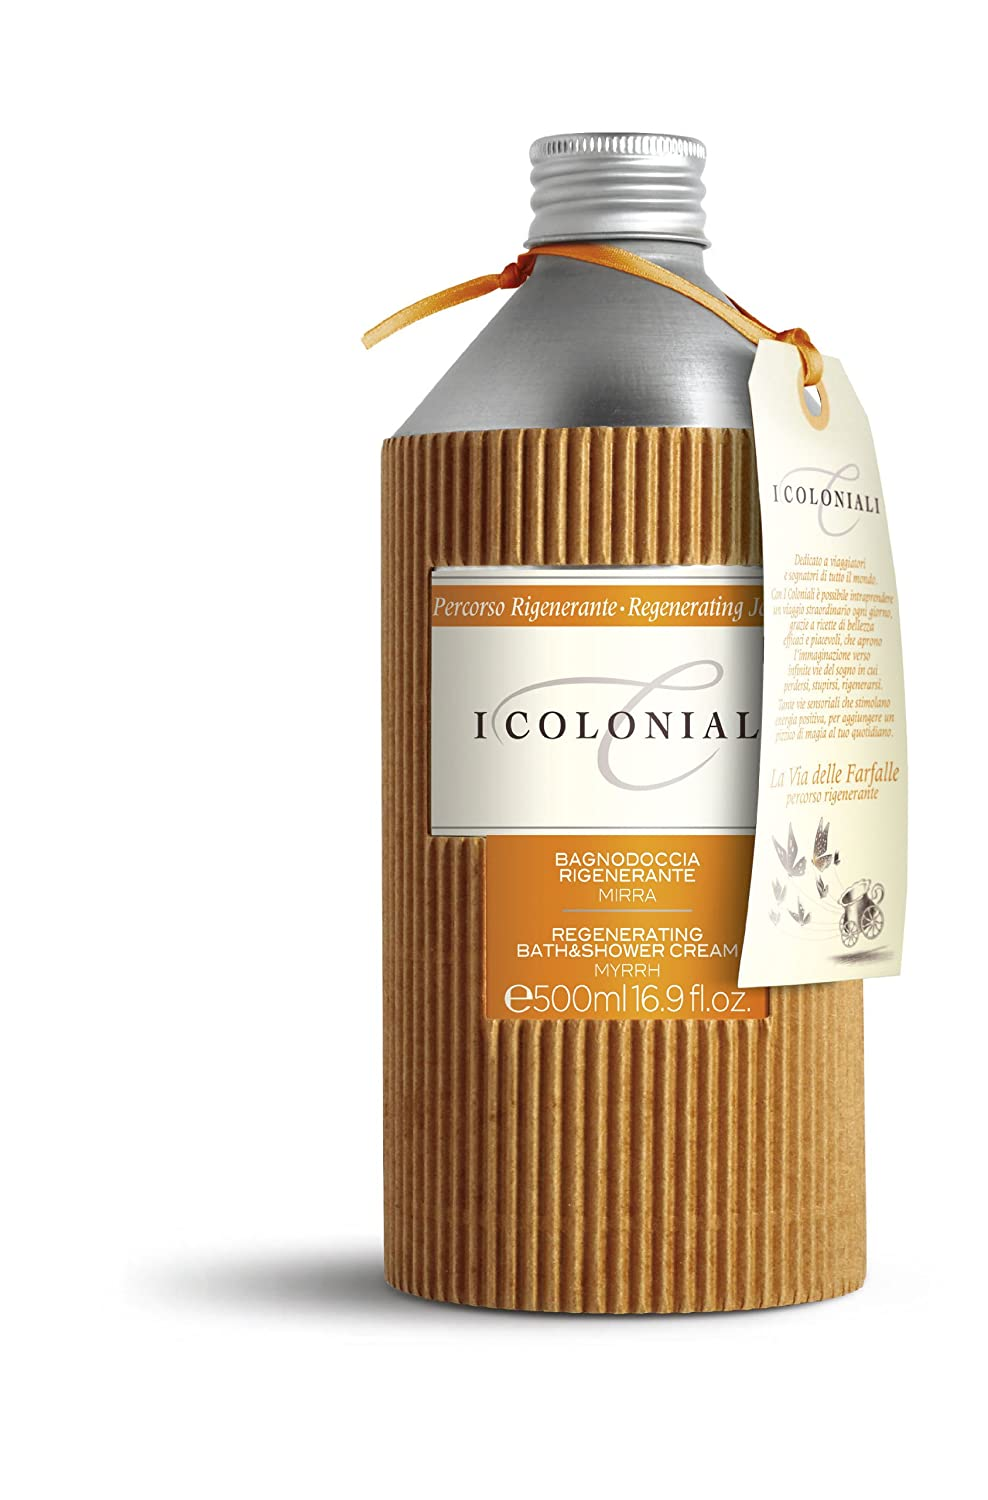 I Coloniali Bath and Shower Cream Regenerating Myrrh, Atkinsons, Unisex Bath and Shower Cream – Bottle 500 ml. 10077651